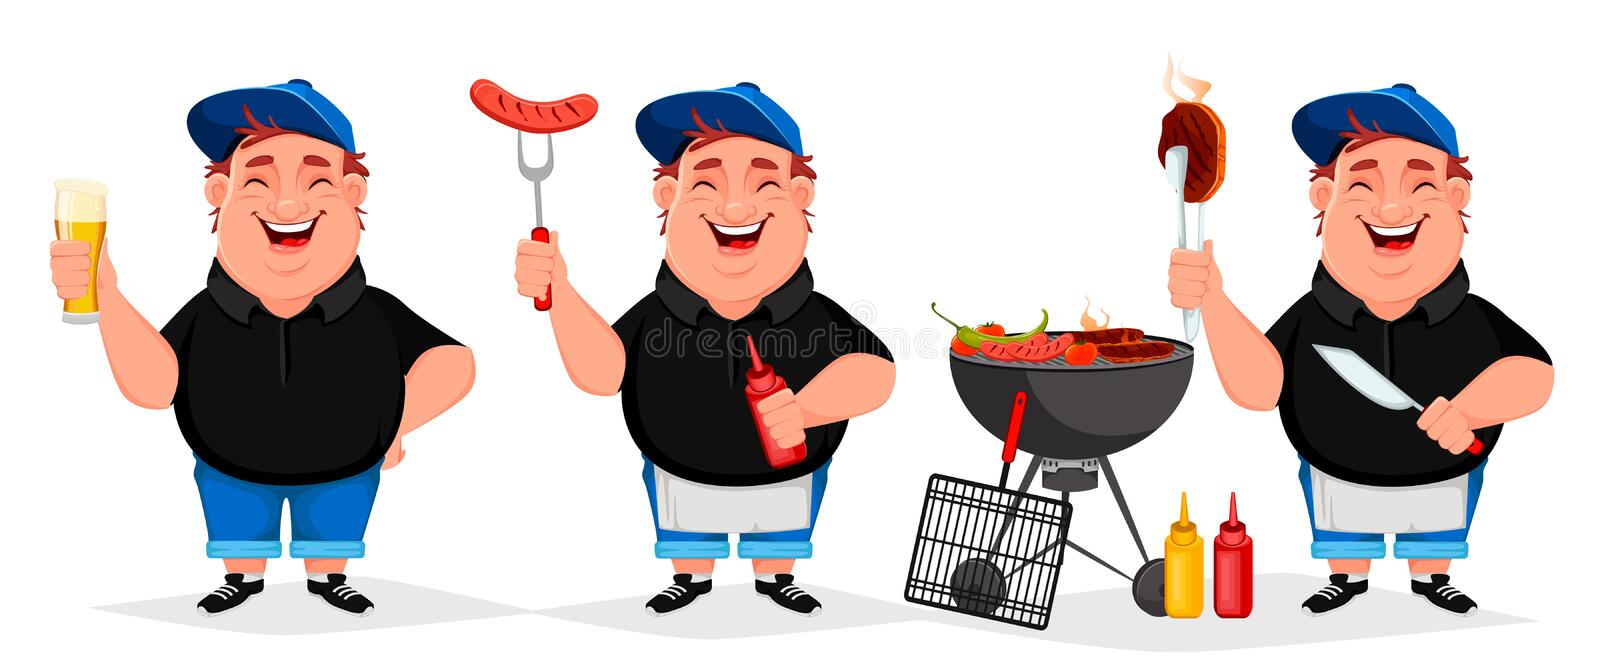 BBQ party. Young cheerful man cooks grilled food. Set of three poses. Barbecue party. Vector illustration on white background vector illustration